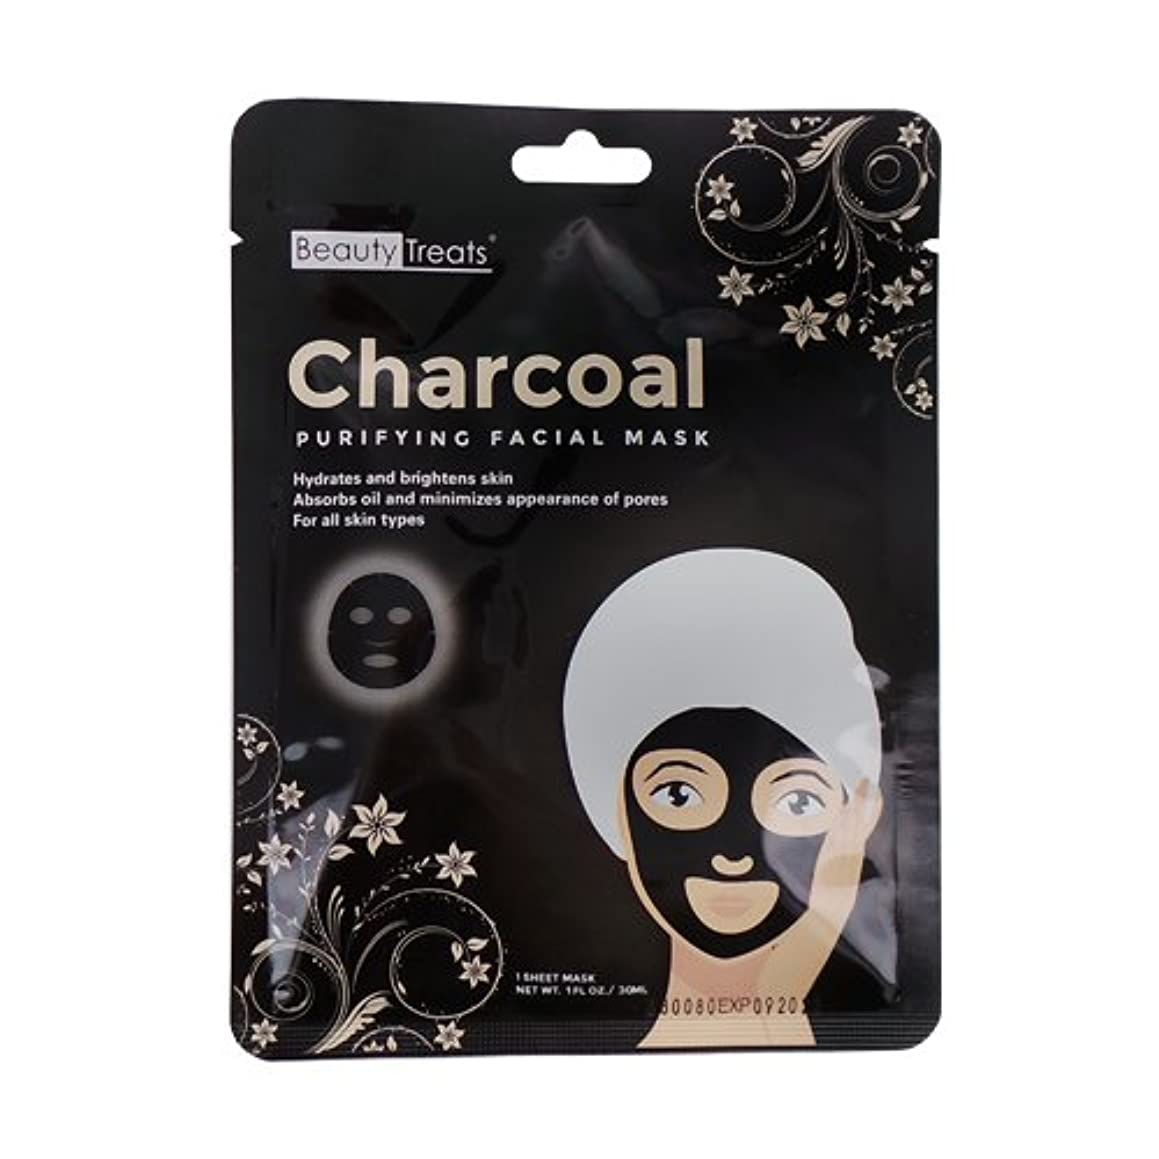 ボンド恐れる交響曲(6 Pack) BEAUTY TREATS Charcoal Purifying Facial Mask (並行輸入品)